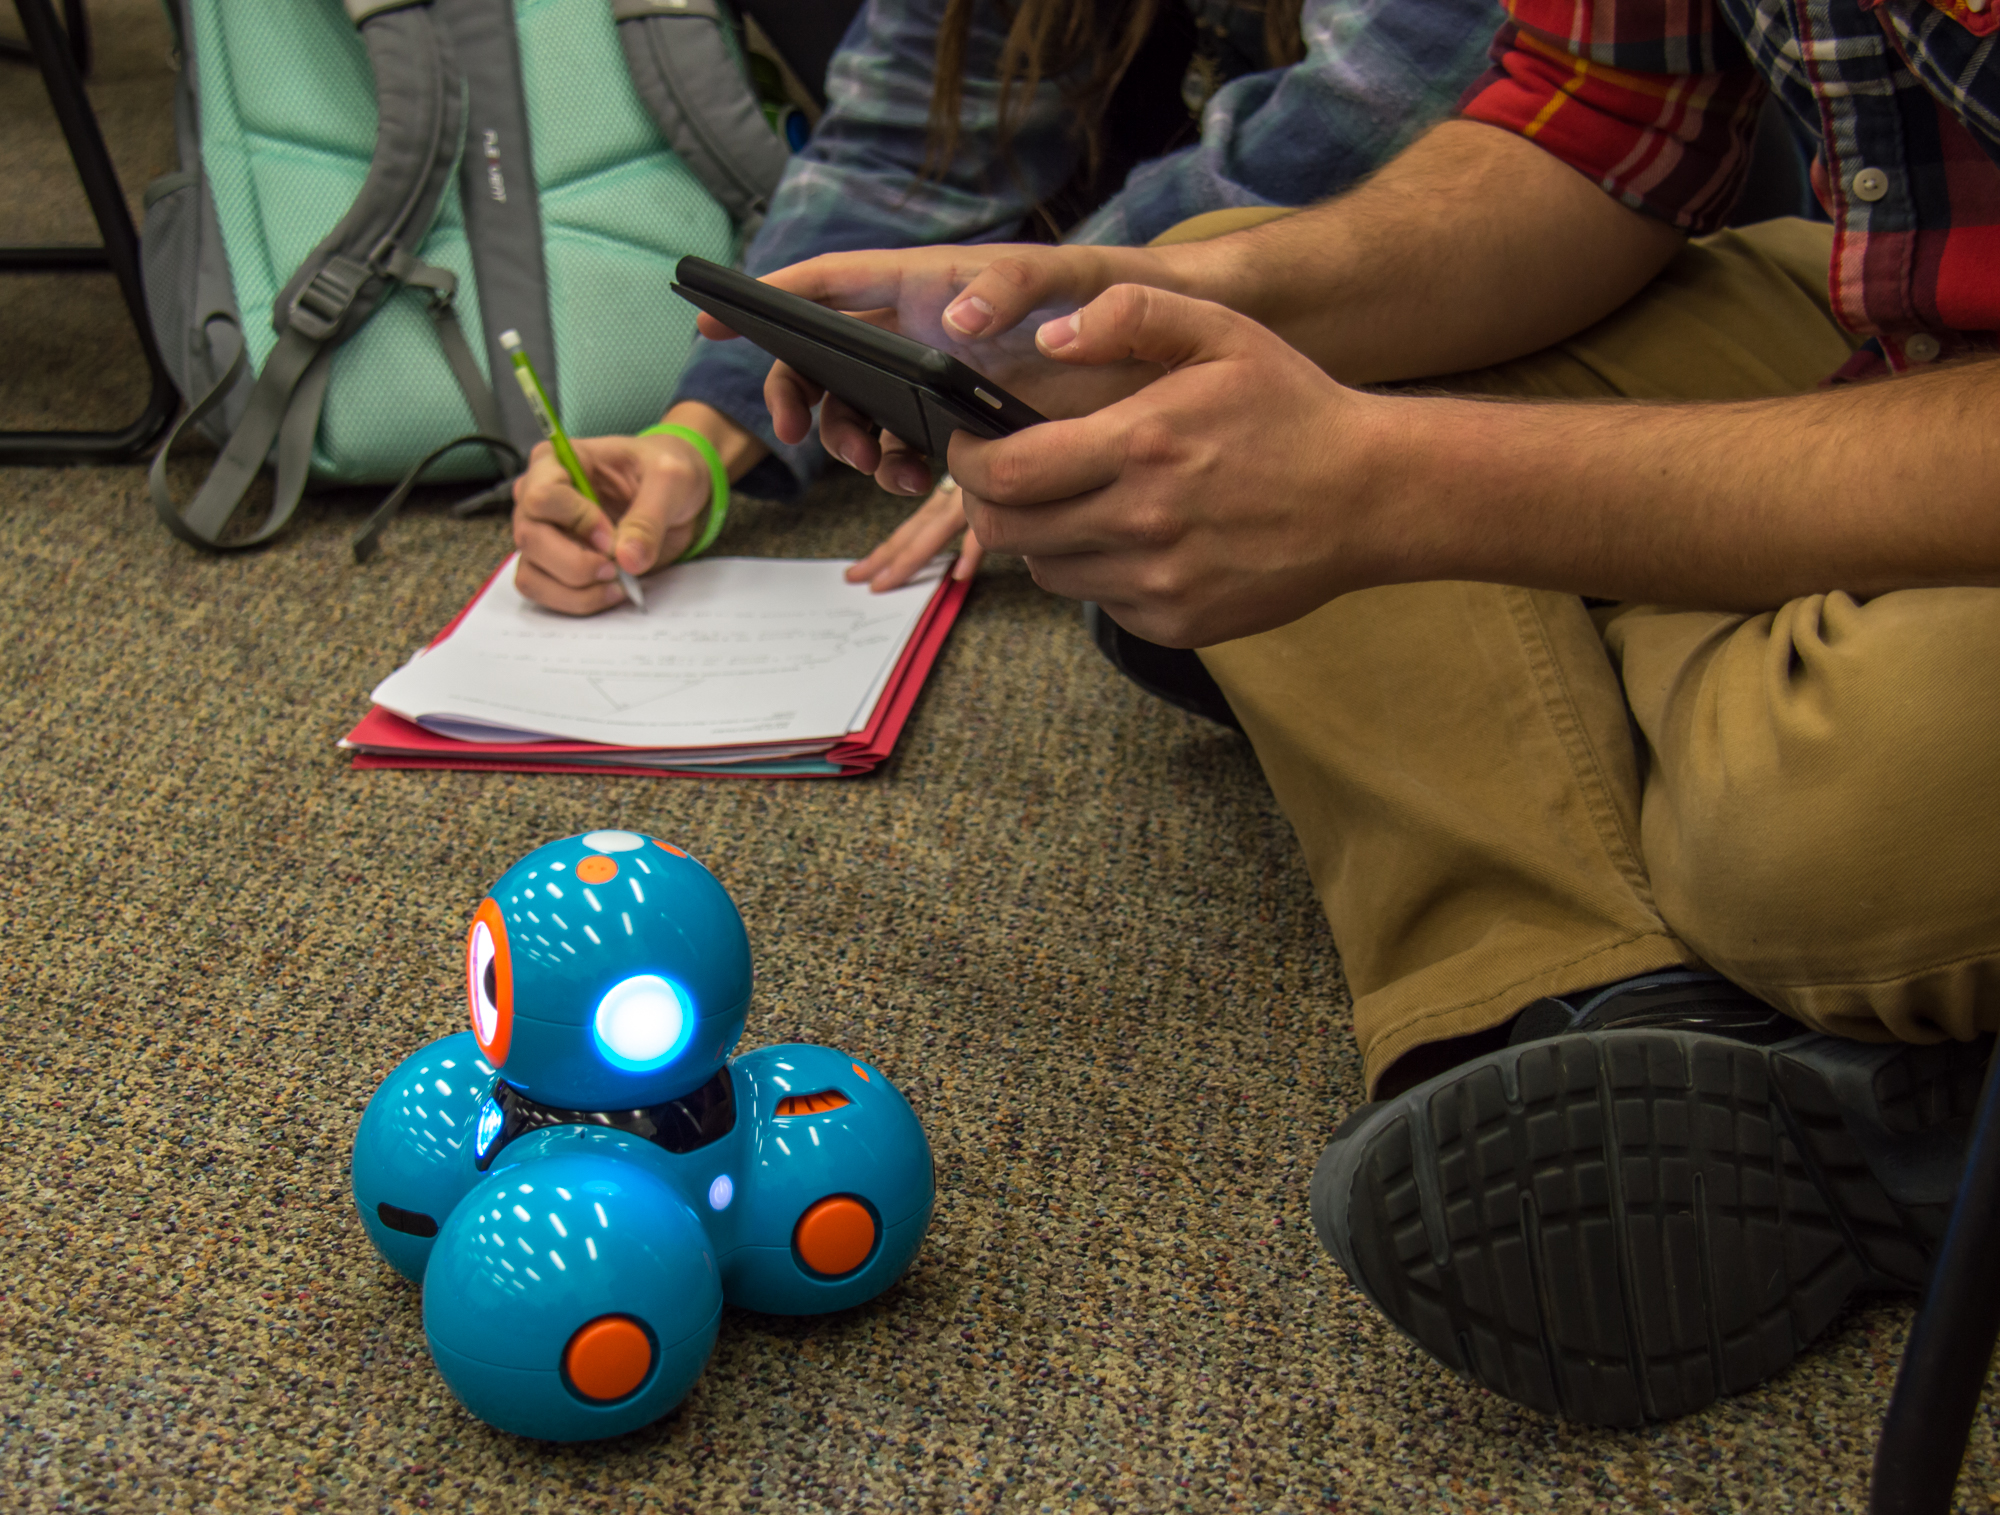 Students use robots in their math class